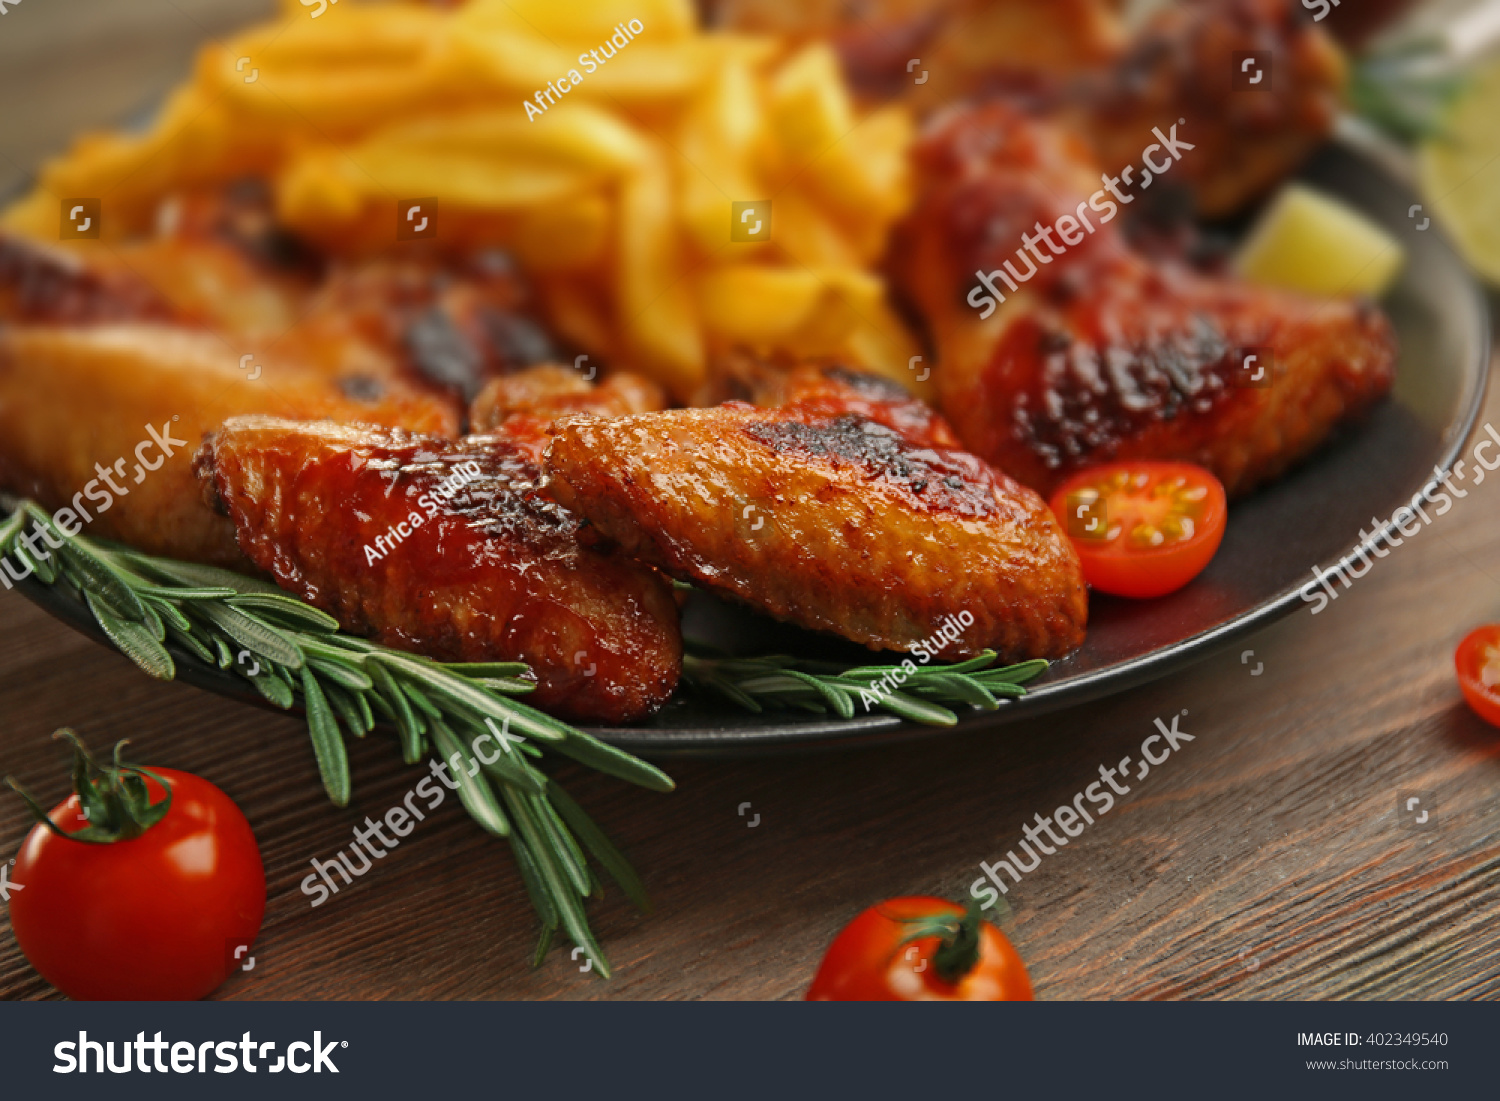 Grilled Chicken Wings French Fries Gardenstaff Stock Photo (Royalty ...